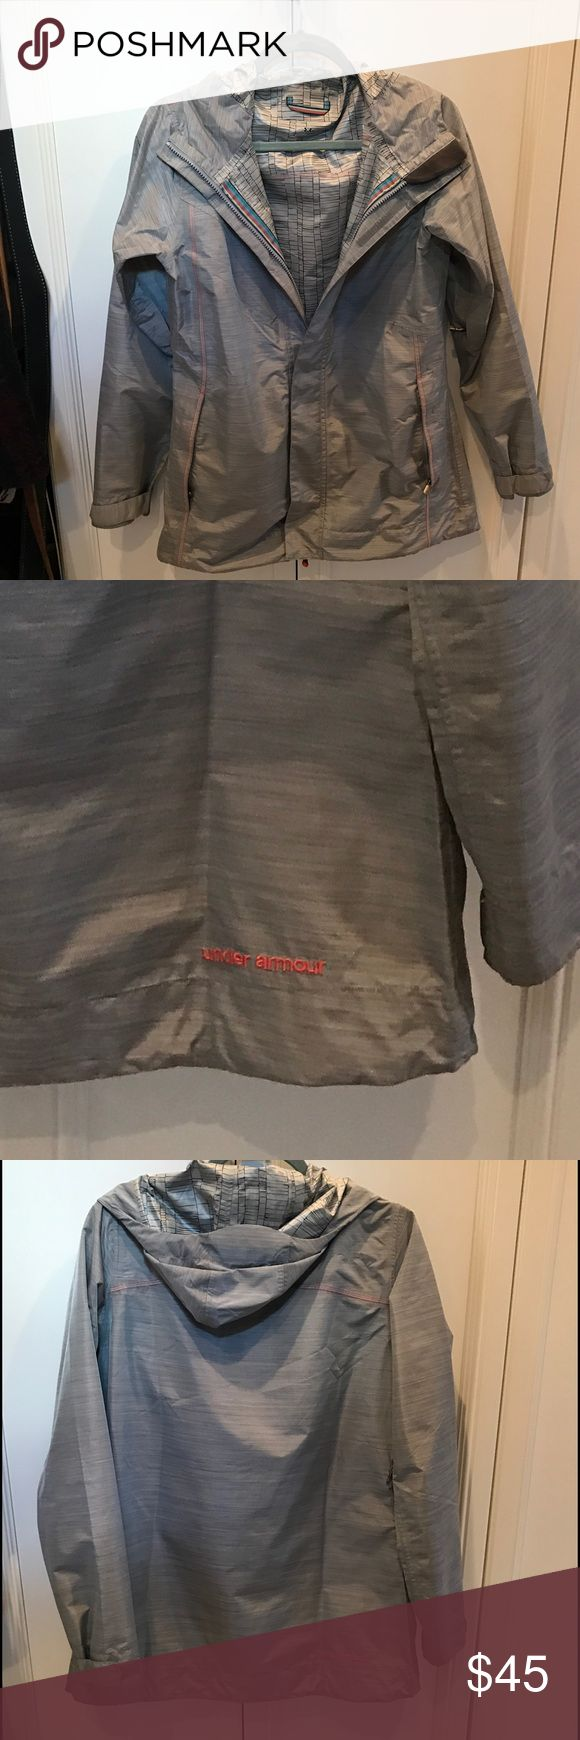 Under Armour Women's Rain Jacket Excellent Condition, no stuns or flaws, light gray with orange trim stitching Under Armour Jackets & Coats